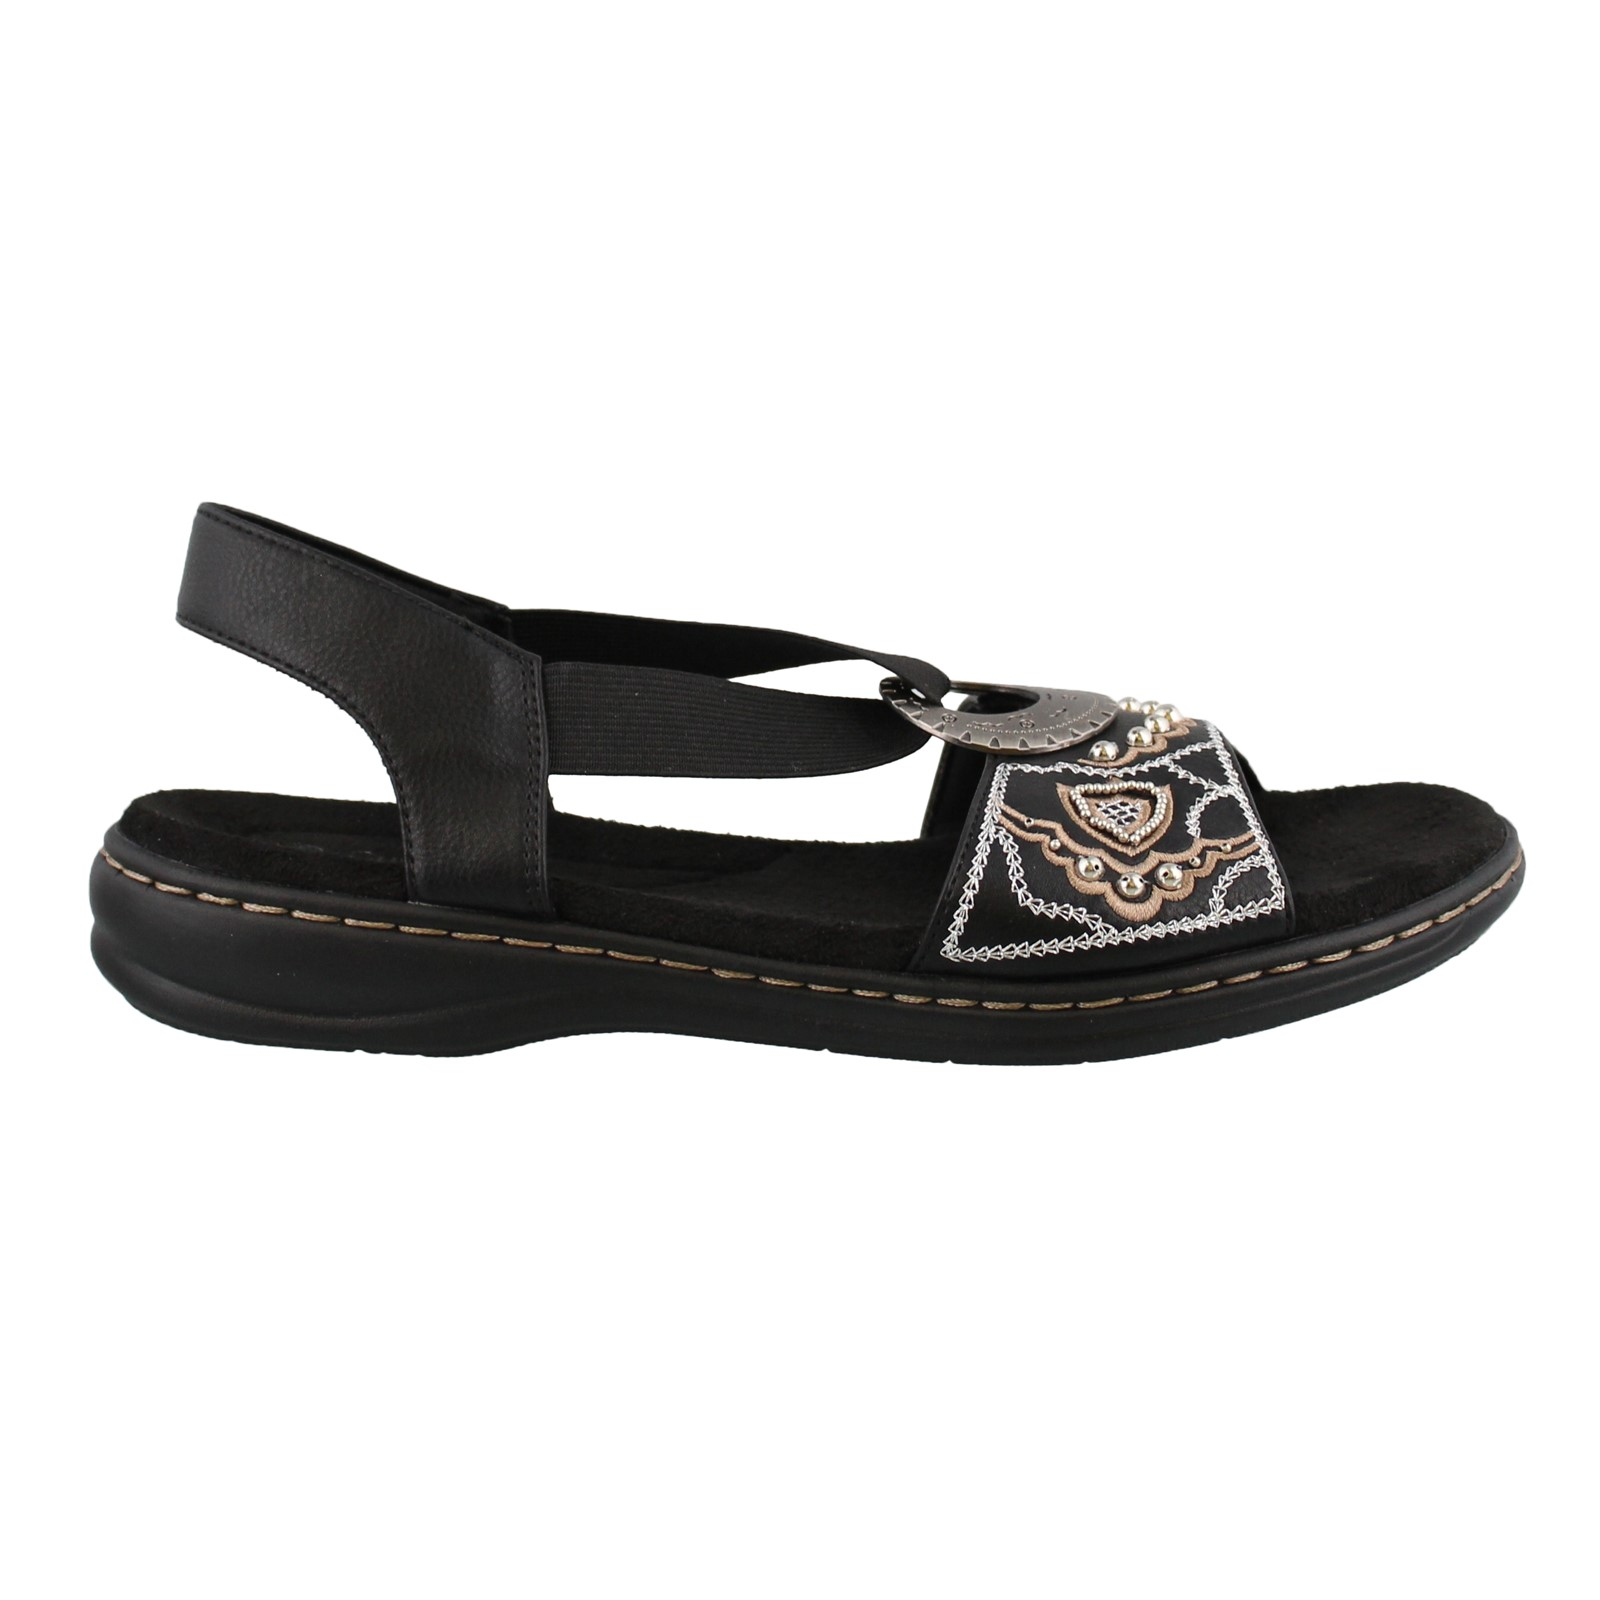 Women's Cushion Aire, Brittany Low Heel Sandals